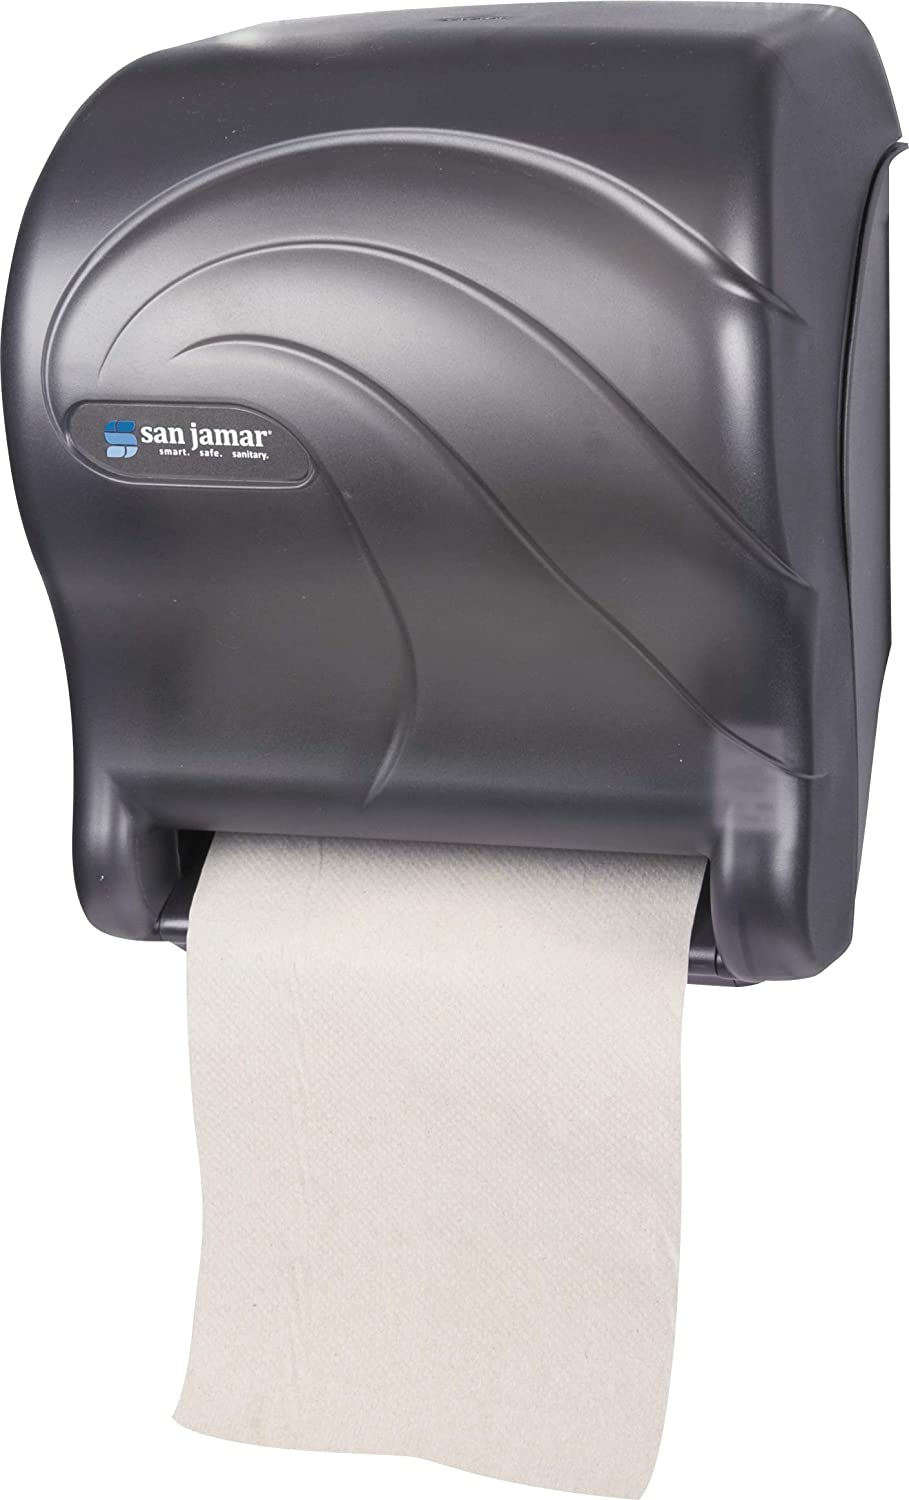 San Jamar T8090TBK Tear-N-Dry Essence Oceans Hands Free Paper Towel Dispenser, Black Pearl